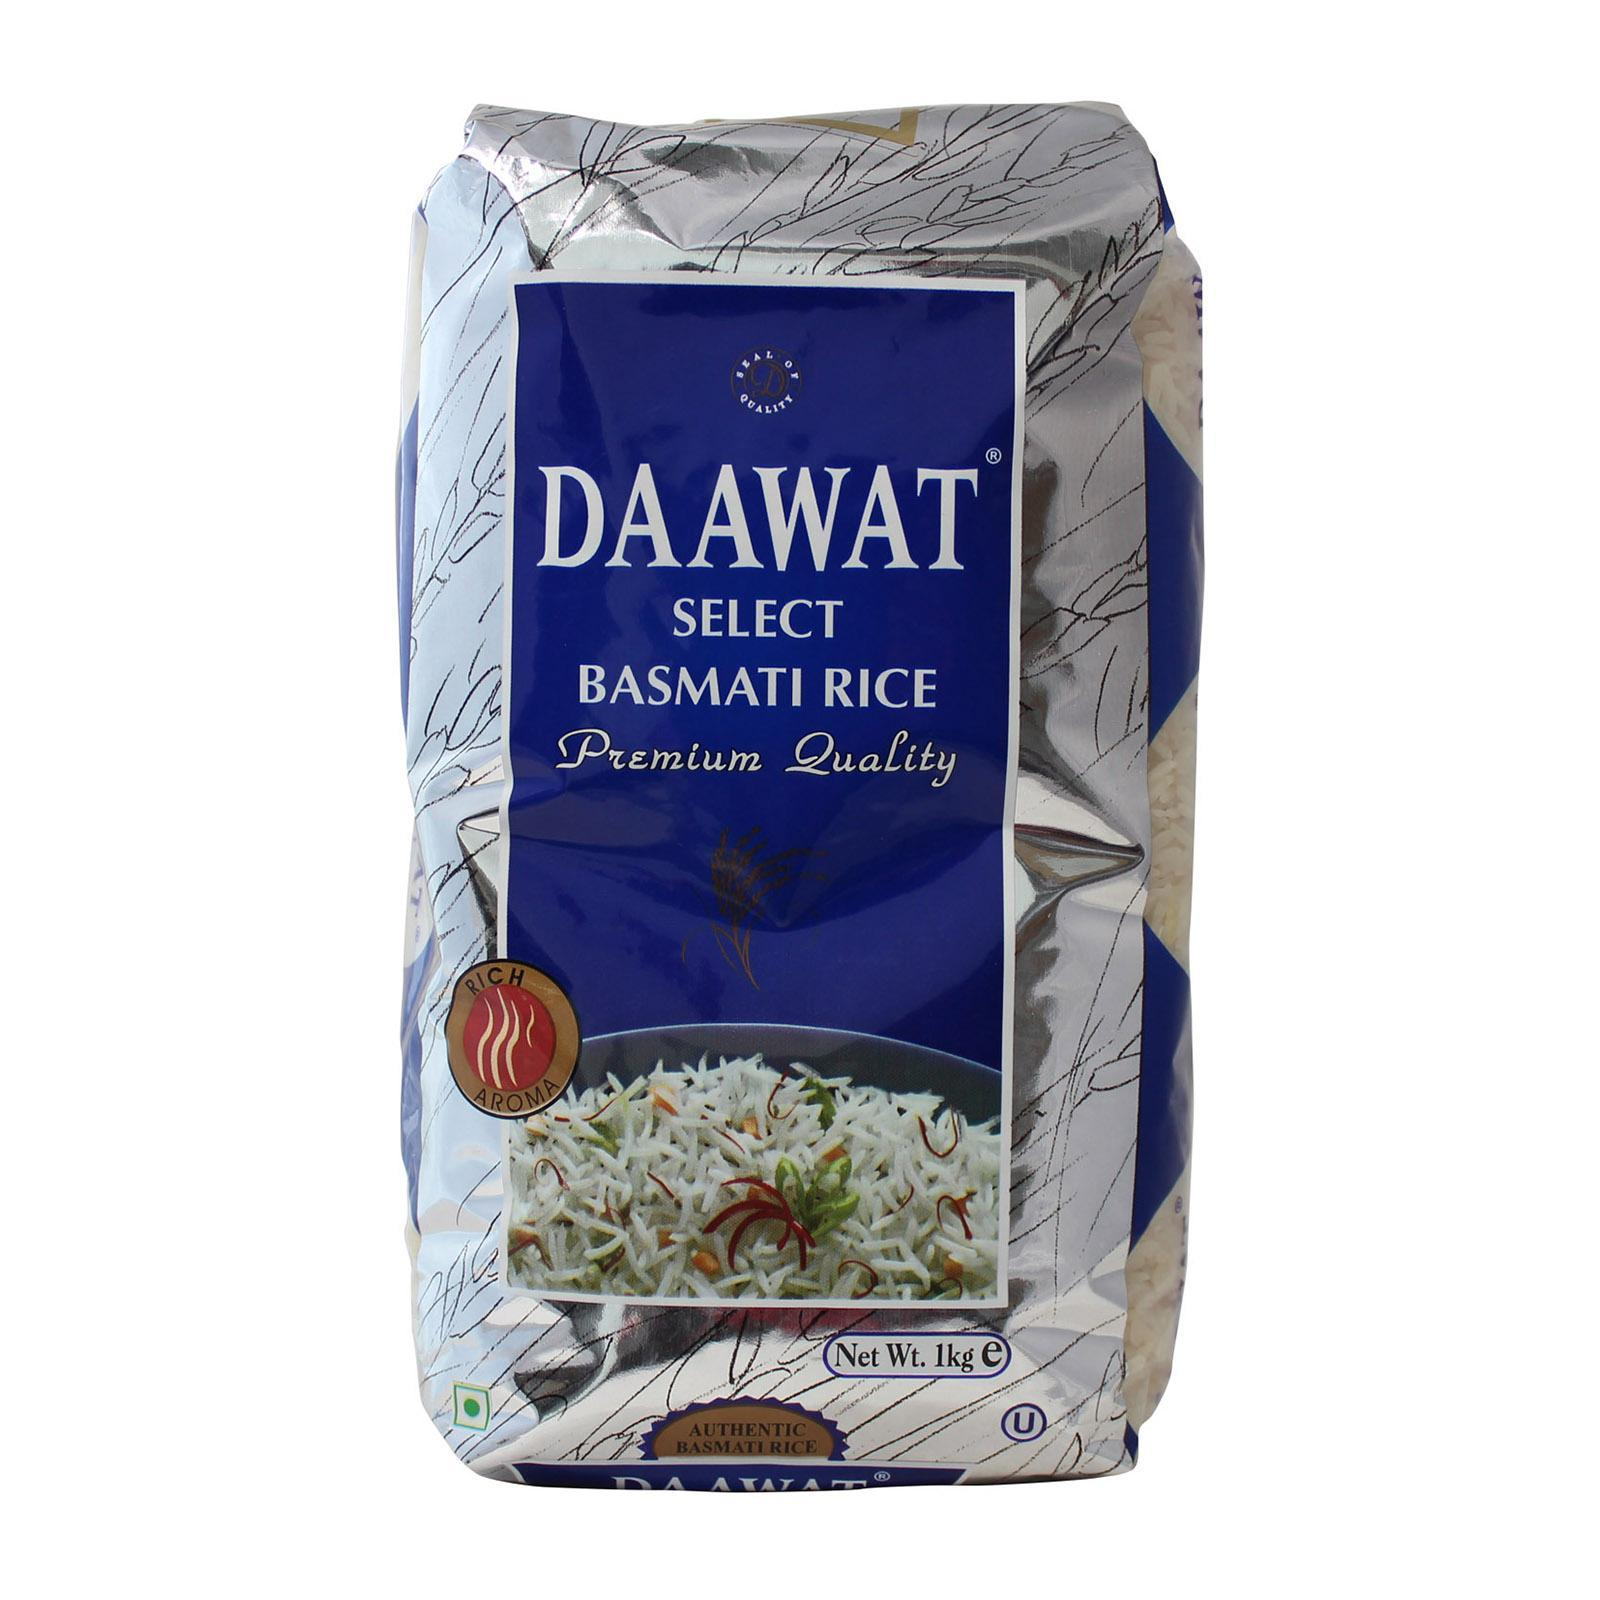 Daawat Basmati Rice 1kg - By Dashmesh By Redmart.